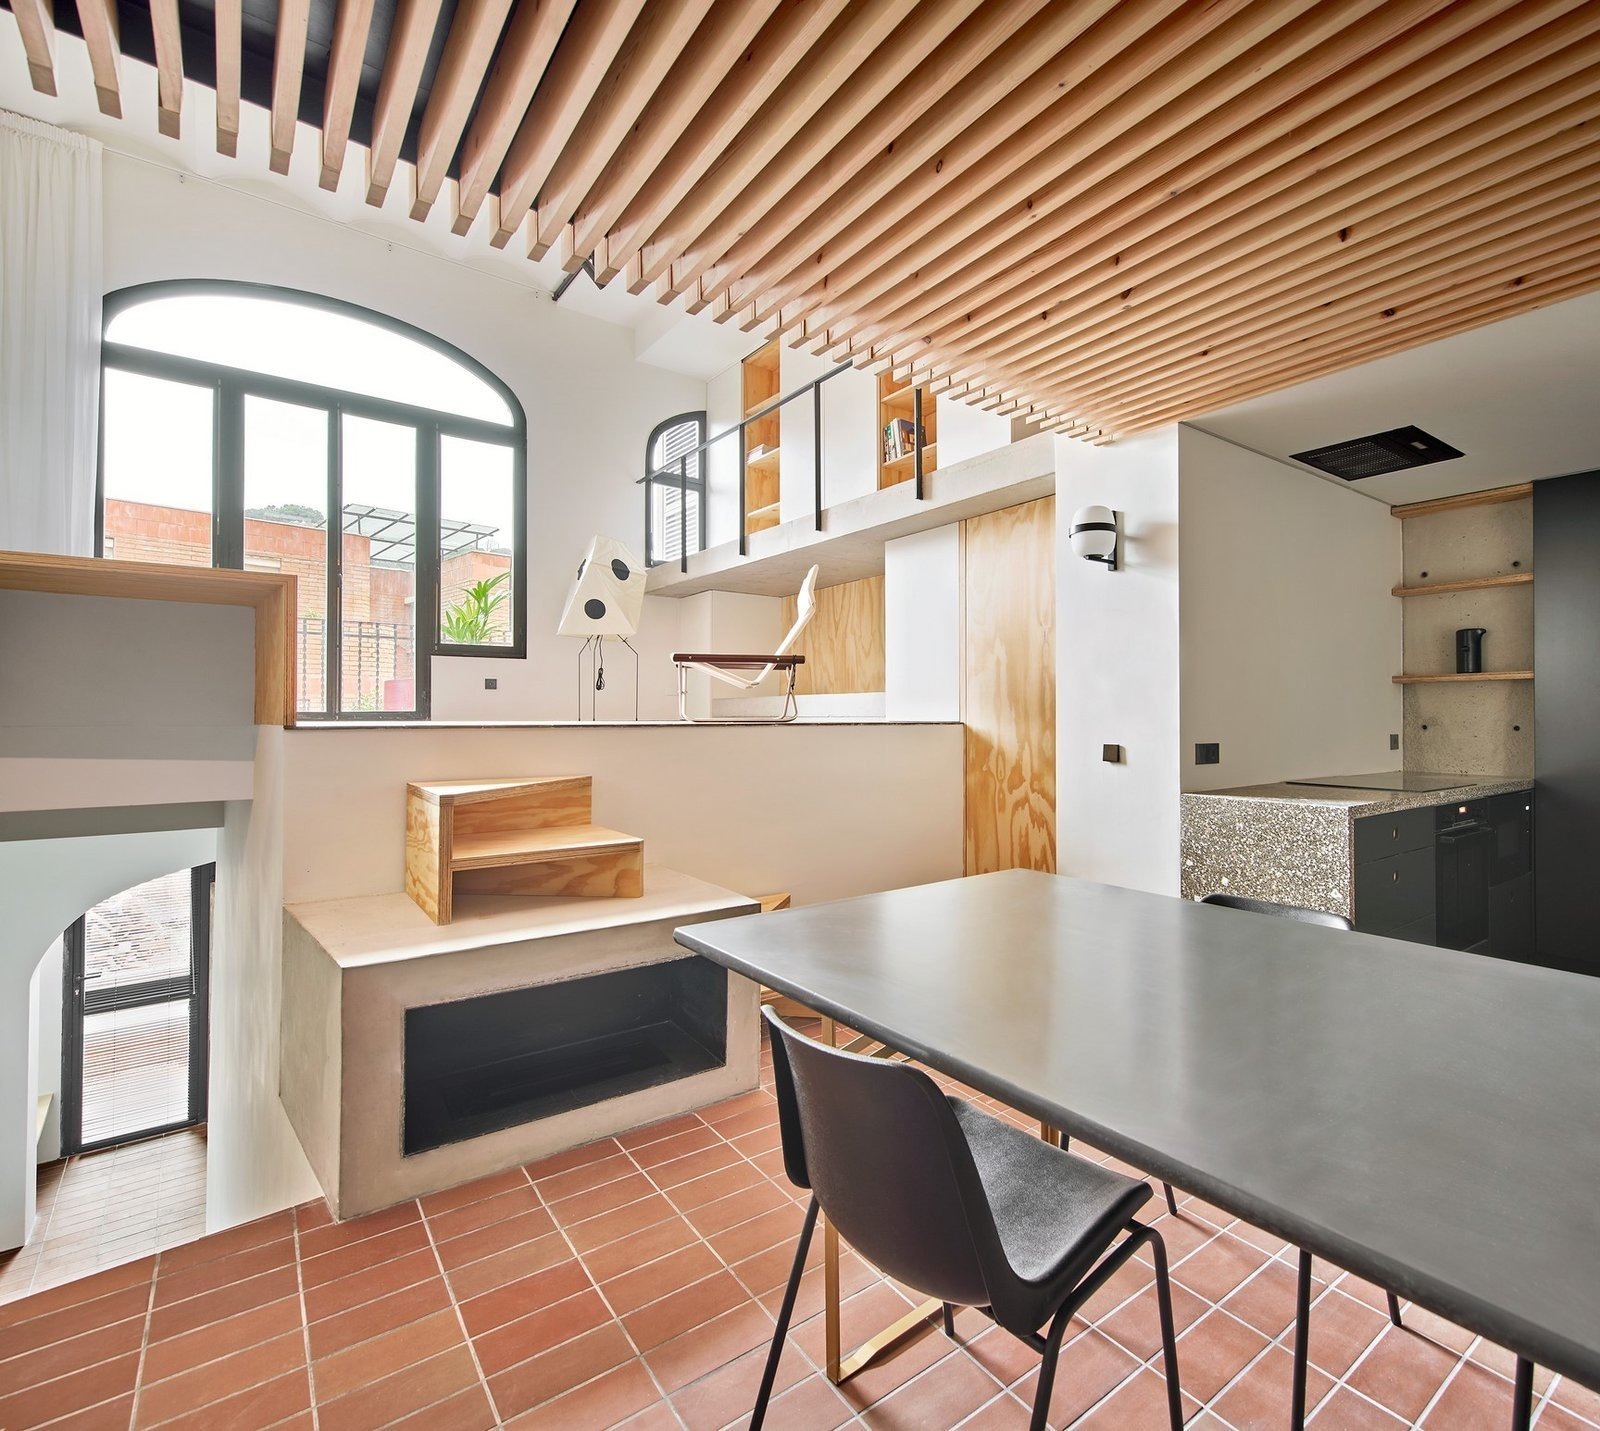 Dining Room, Table, Ceramic Tile Floor, Wood Burning Fireplace, Wall Lighting, and Chair  Photo 9 of 15 in A Renovation Turns a Once-Abandoned Barcelona Building Into an Airy Home